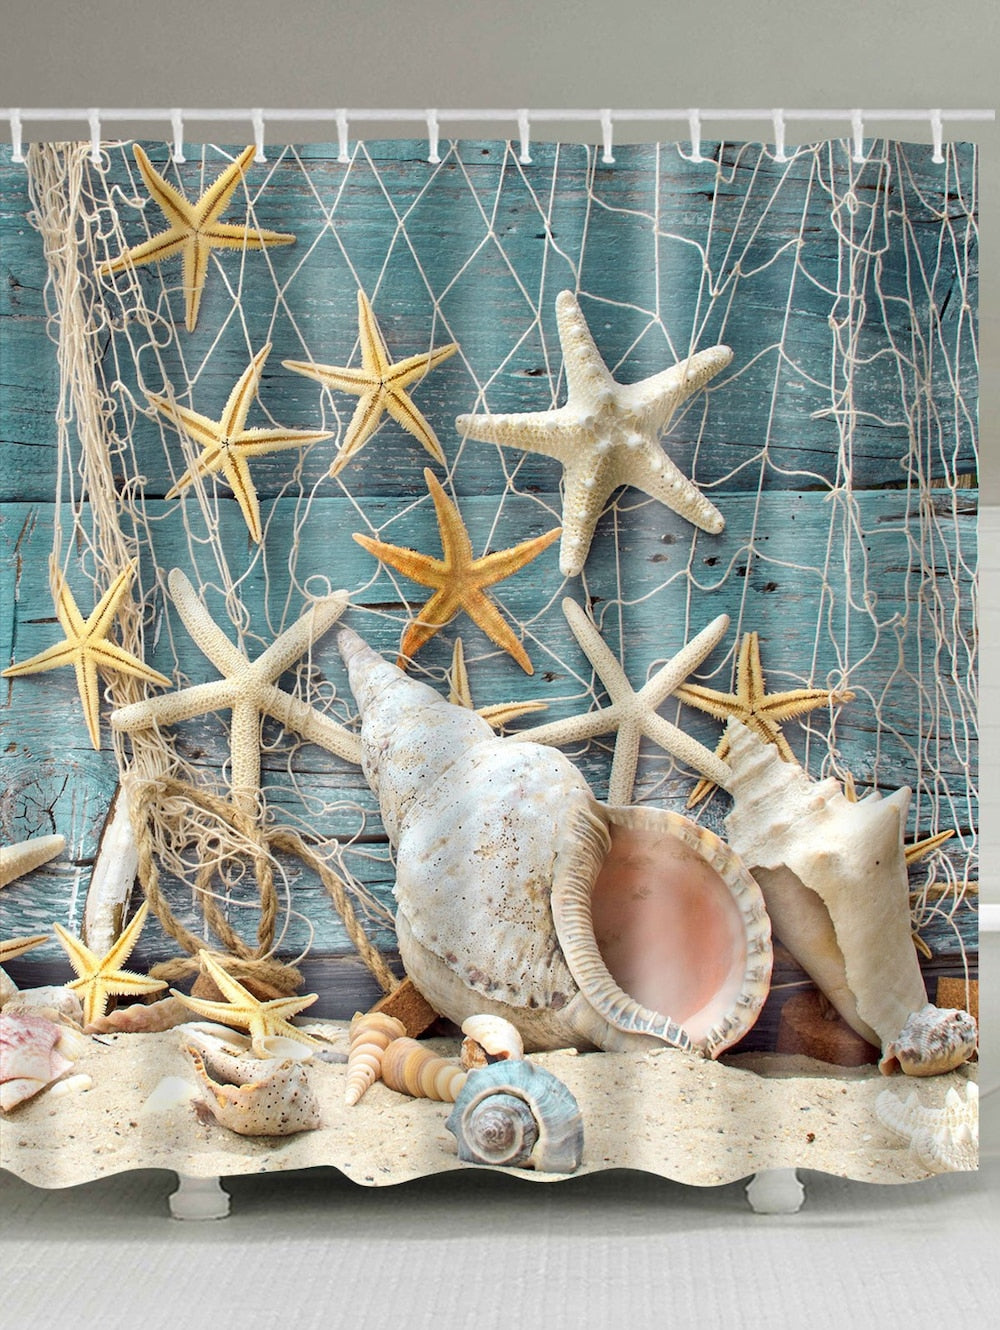 Starfish and Shell Shower Curtain Deck Coastal Bath Decor | GoJeek